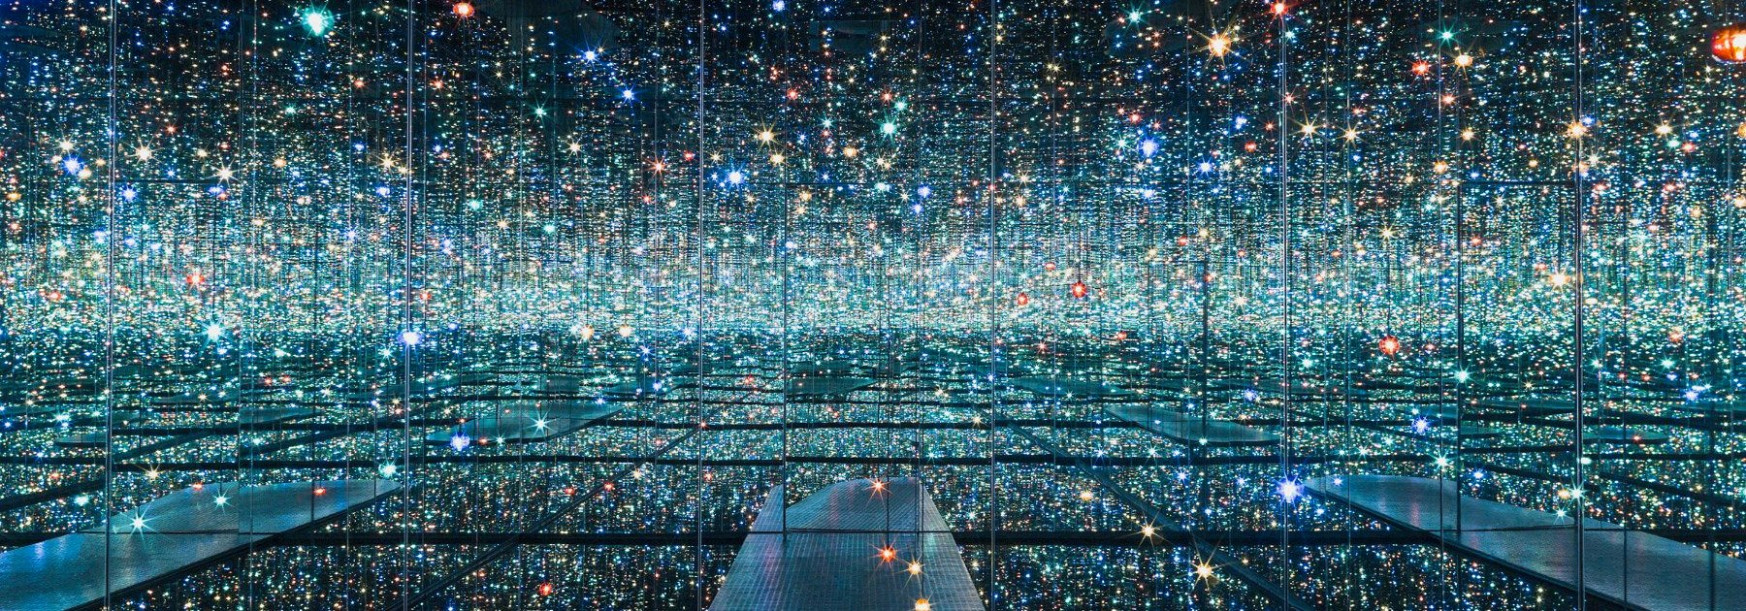 THE BROAD pairs kusama's infinity mirrored room with ambient sound art